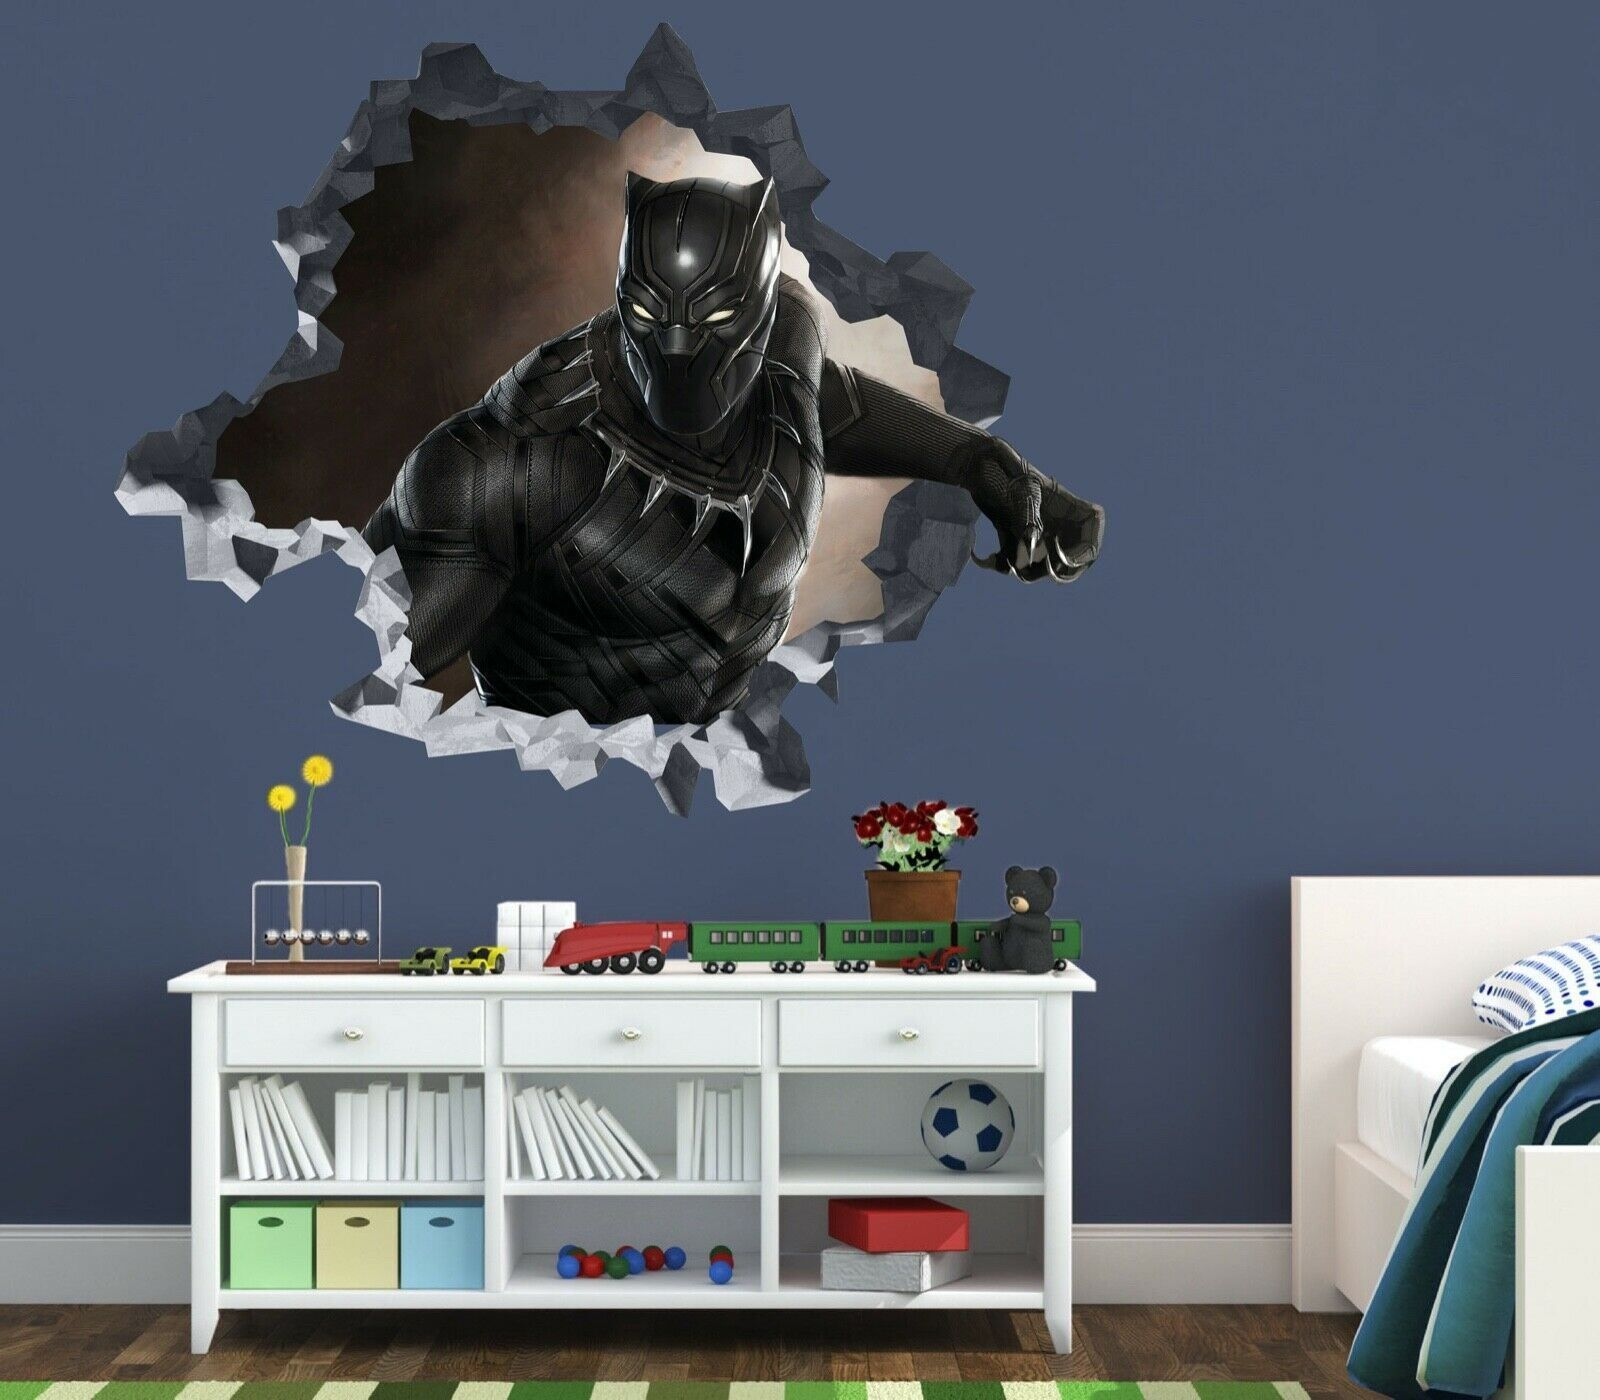 Black Panther Custom Wall Decals 3D Wall Stickers Art - ORP44 - Medium Size: Wide 28\ x 26\  Height